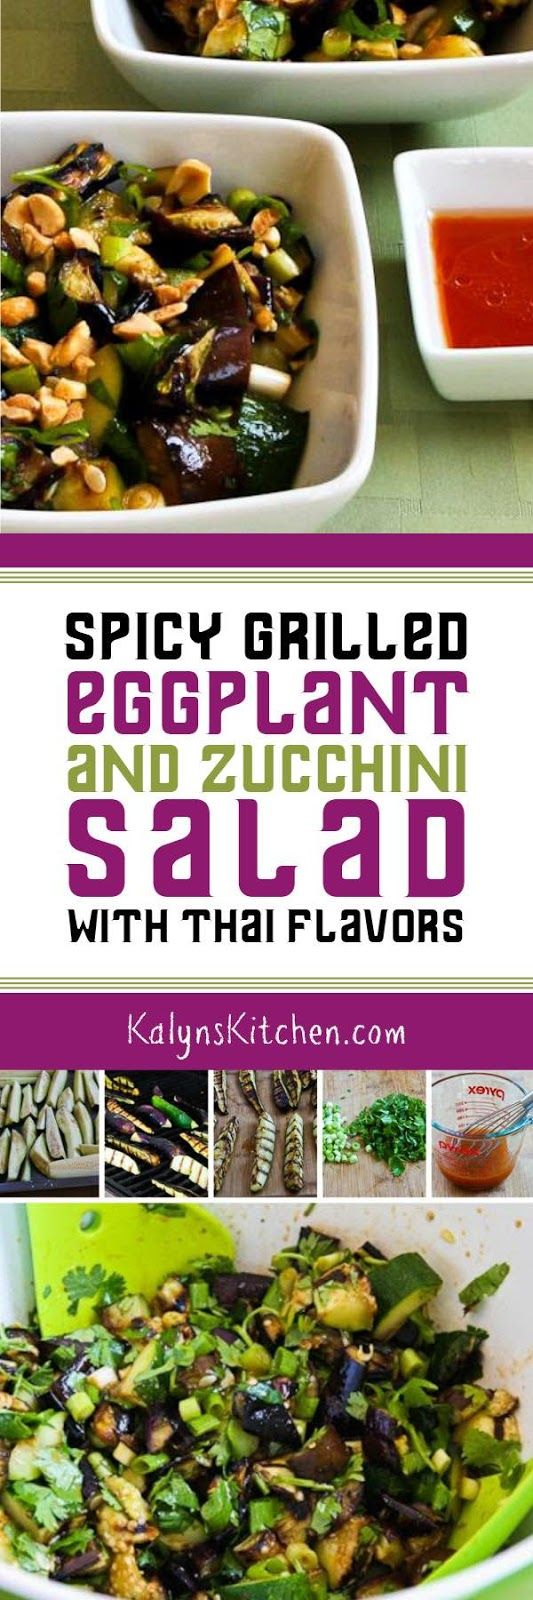 If you like Thai flavors you MUST TRY this Spicy Grilled Eggplant and Zucchini Salad with Thai Flavors; I love everything about this salad and it's low-carb, gluten-free, South Beach Diet friendly, dairy-free, and perfect for Meatless Monday! [from KalynsKitchen.com]